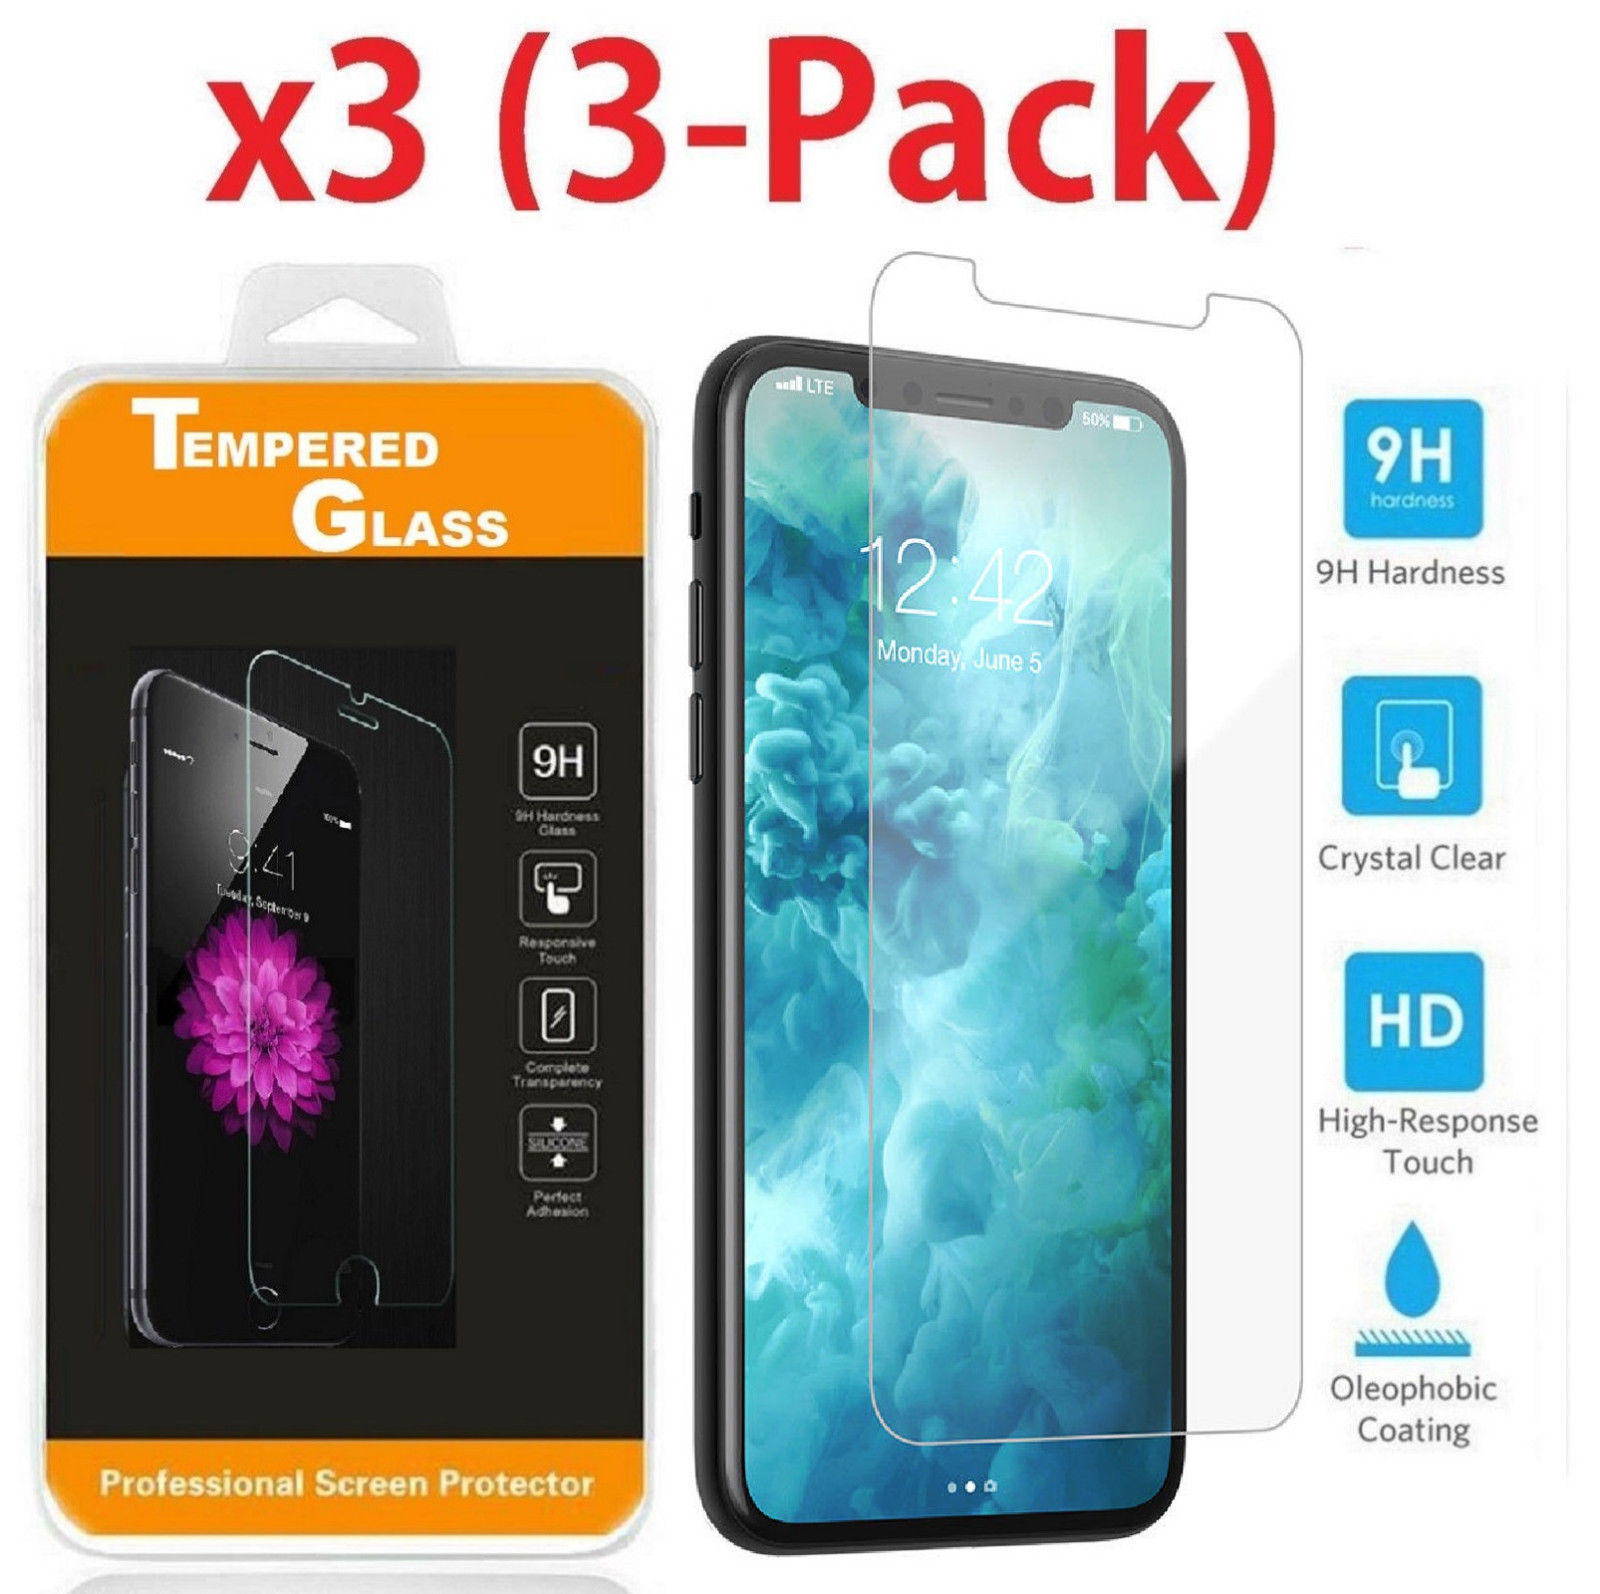 Premium Real Screen Protector Tempered Glass Film For iPhone 6 7 8 Plus Xs Max